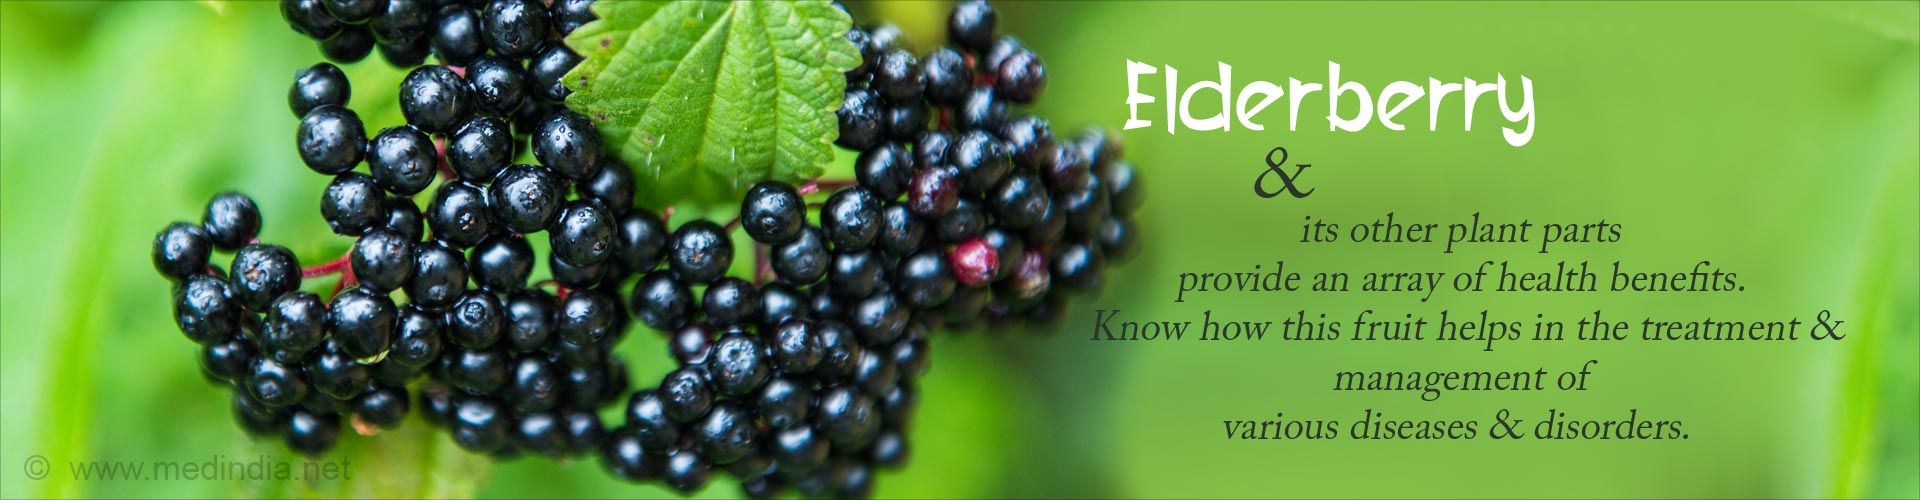 Elderberry and its other plant parts provide an array of health benefits. Know how this fruit helps in the treatment and management of various diseases and disorders